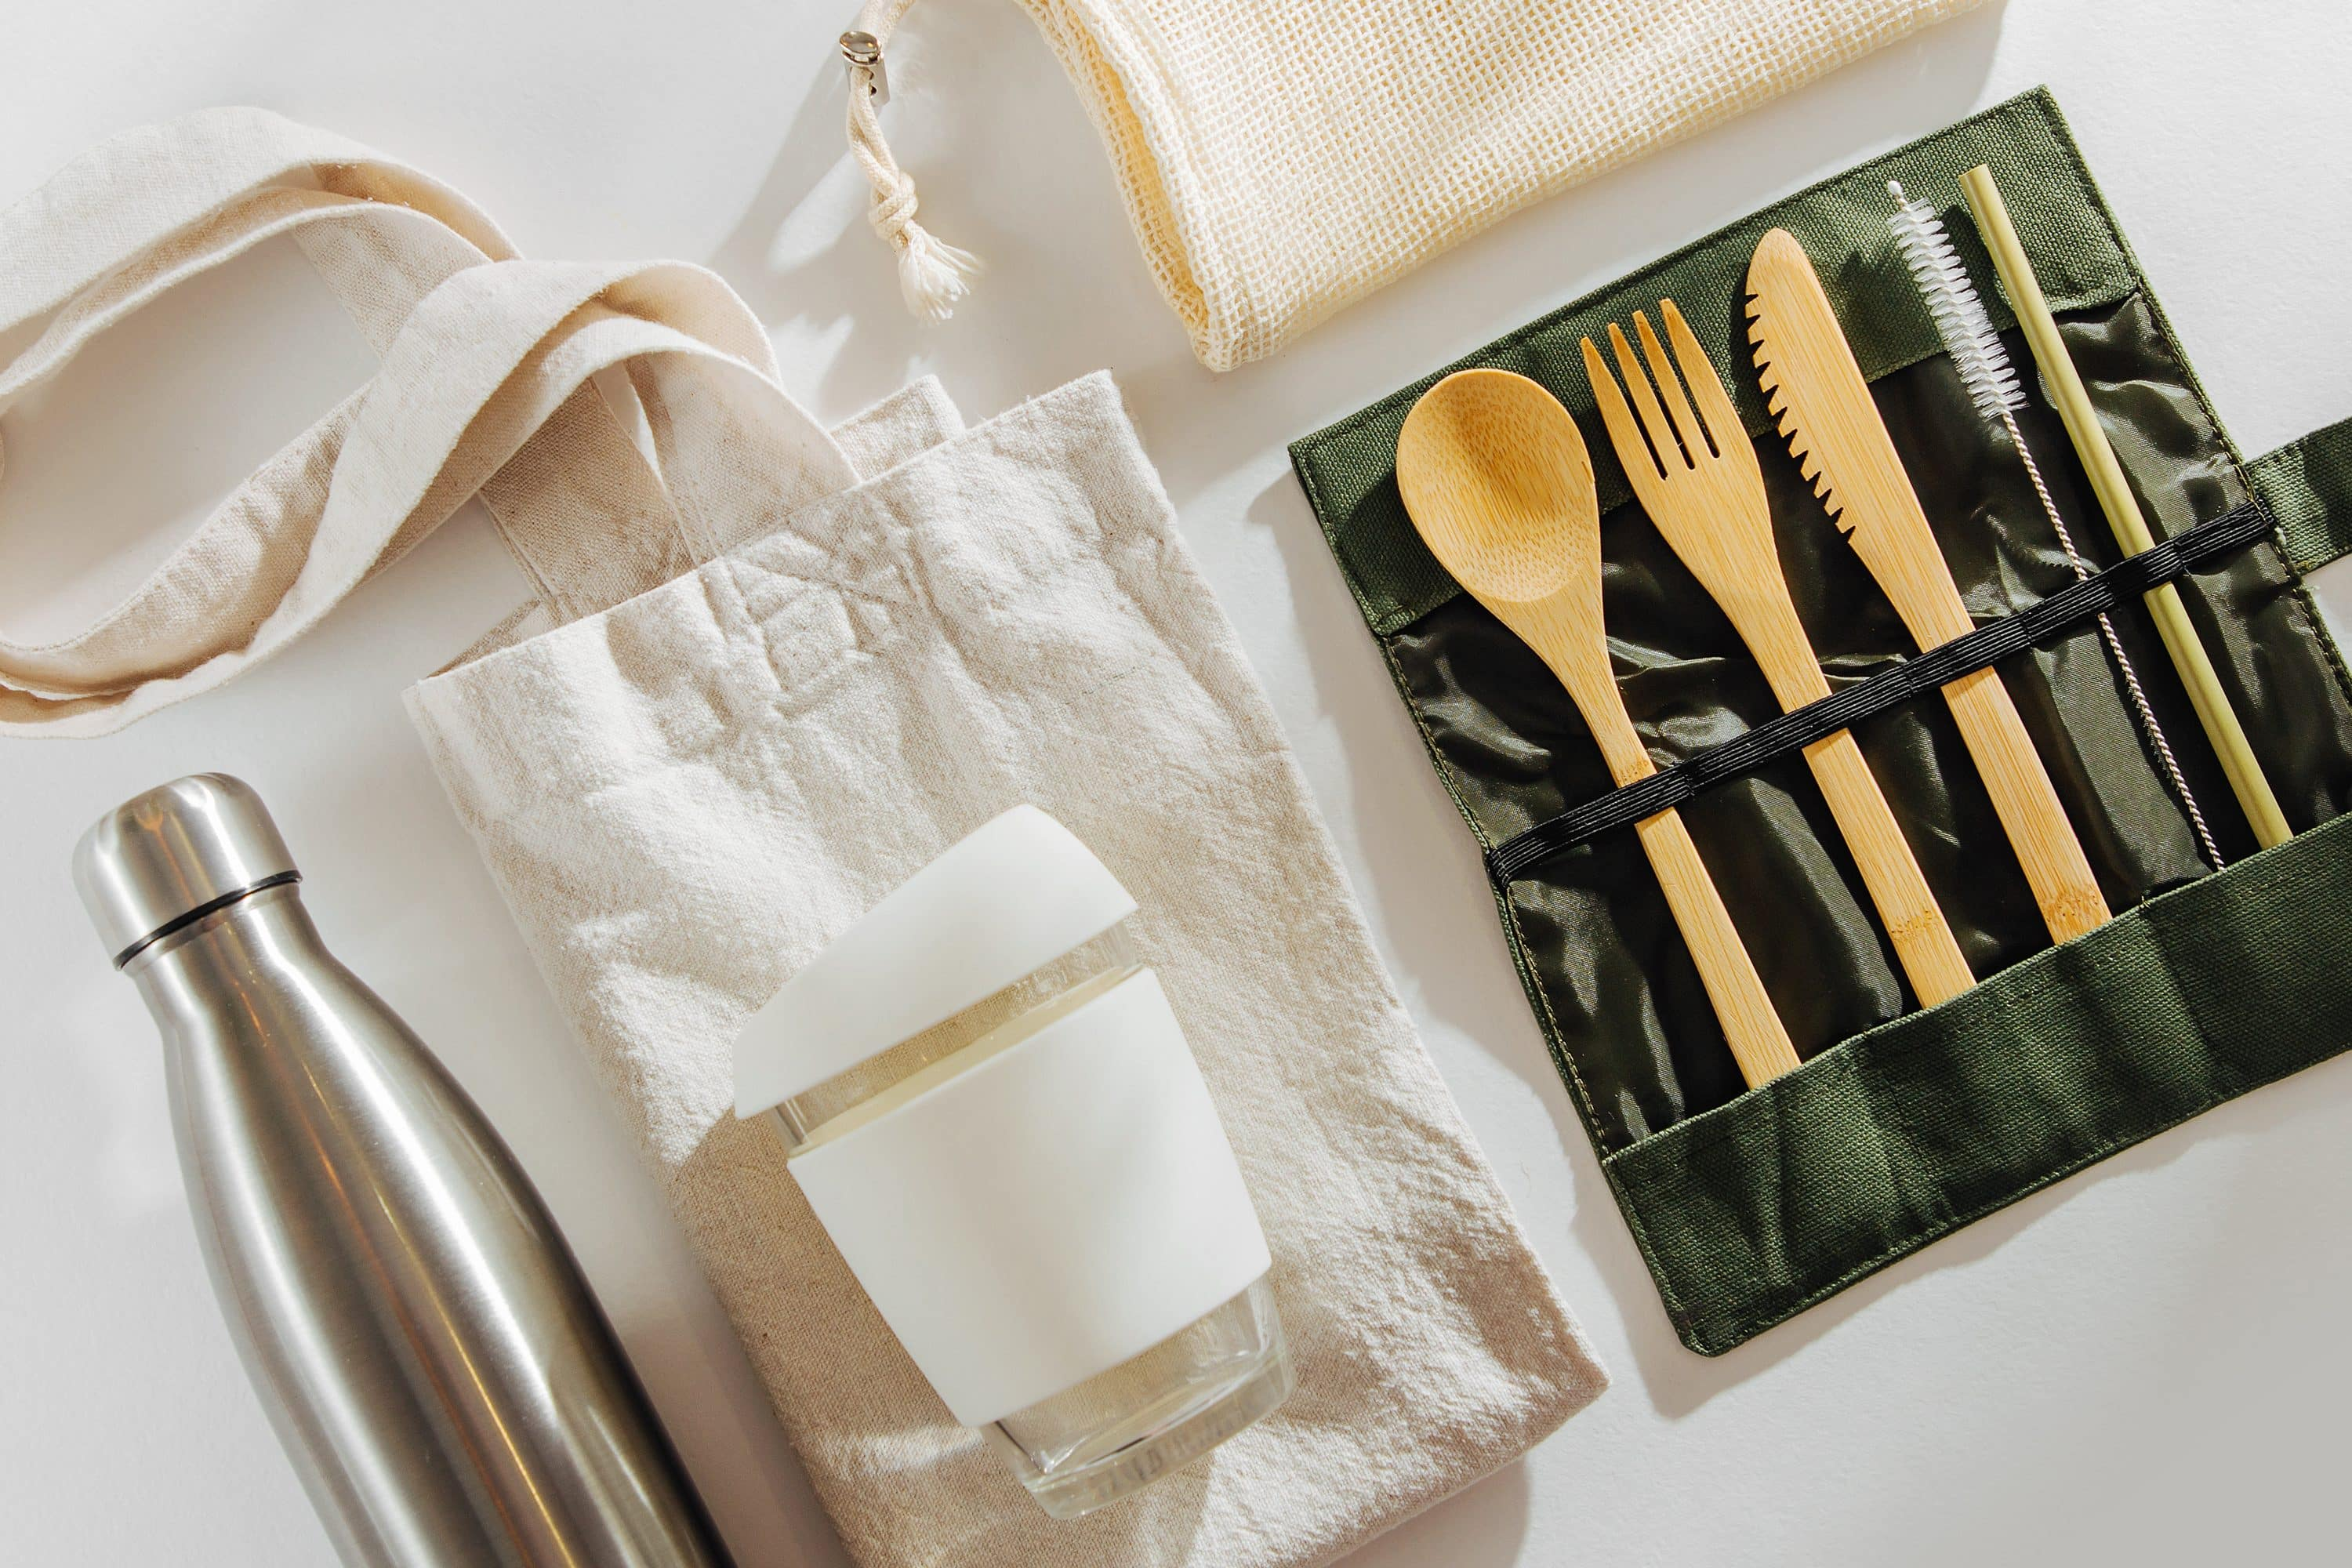 Sustainable travel products including water bottle and cutlery